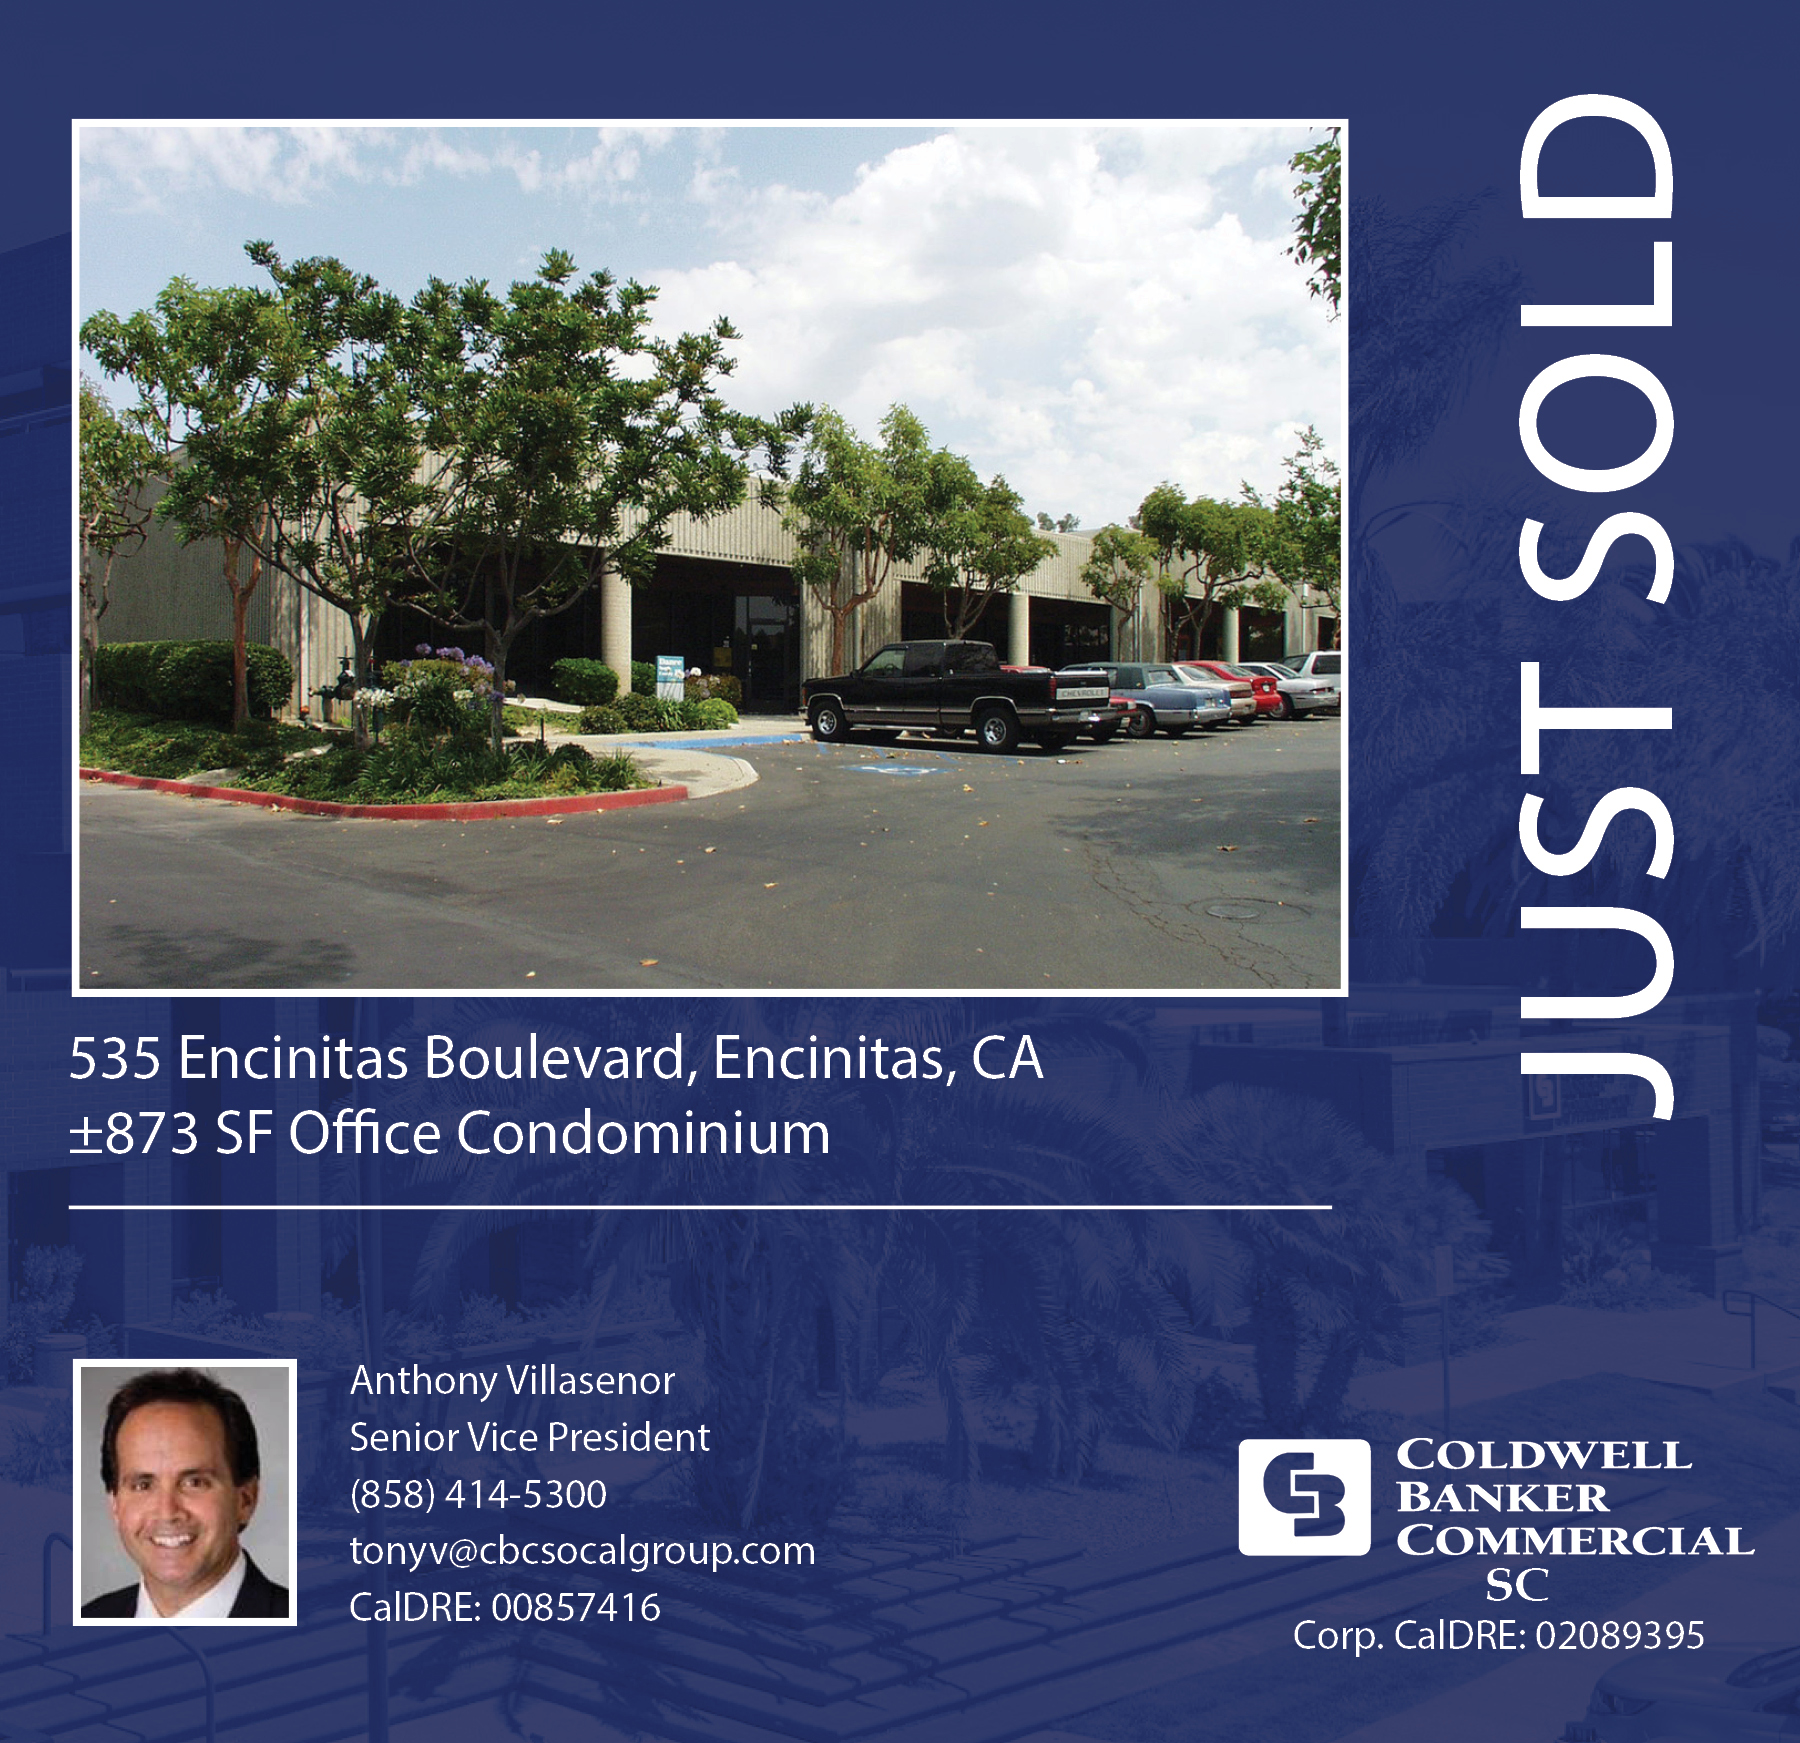 SOLD! by Anthony Villasenor ±873 SF Office Condo